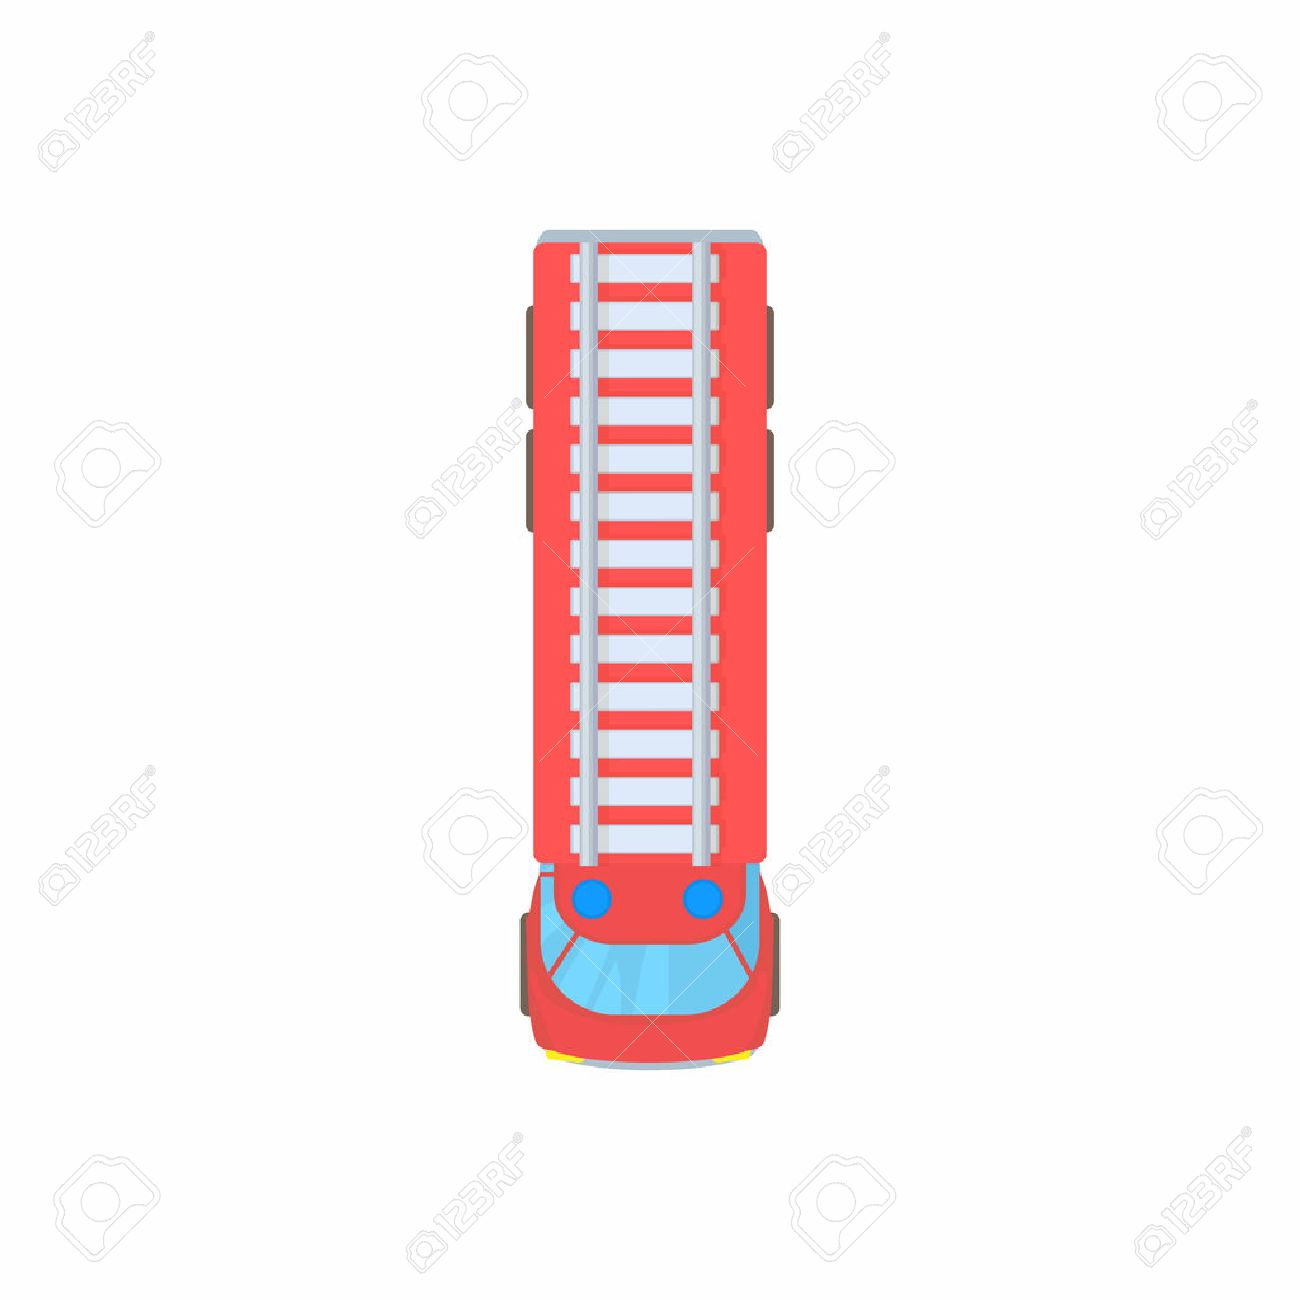 Fire truck top view icon in cartoon style on a white background - 58868093